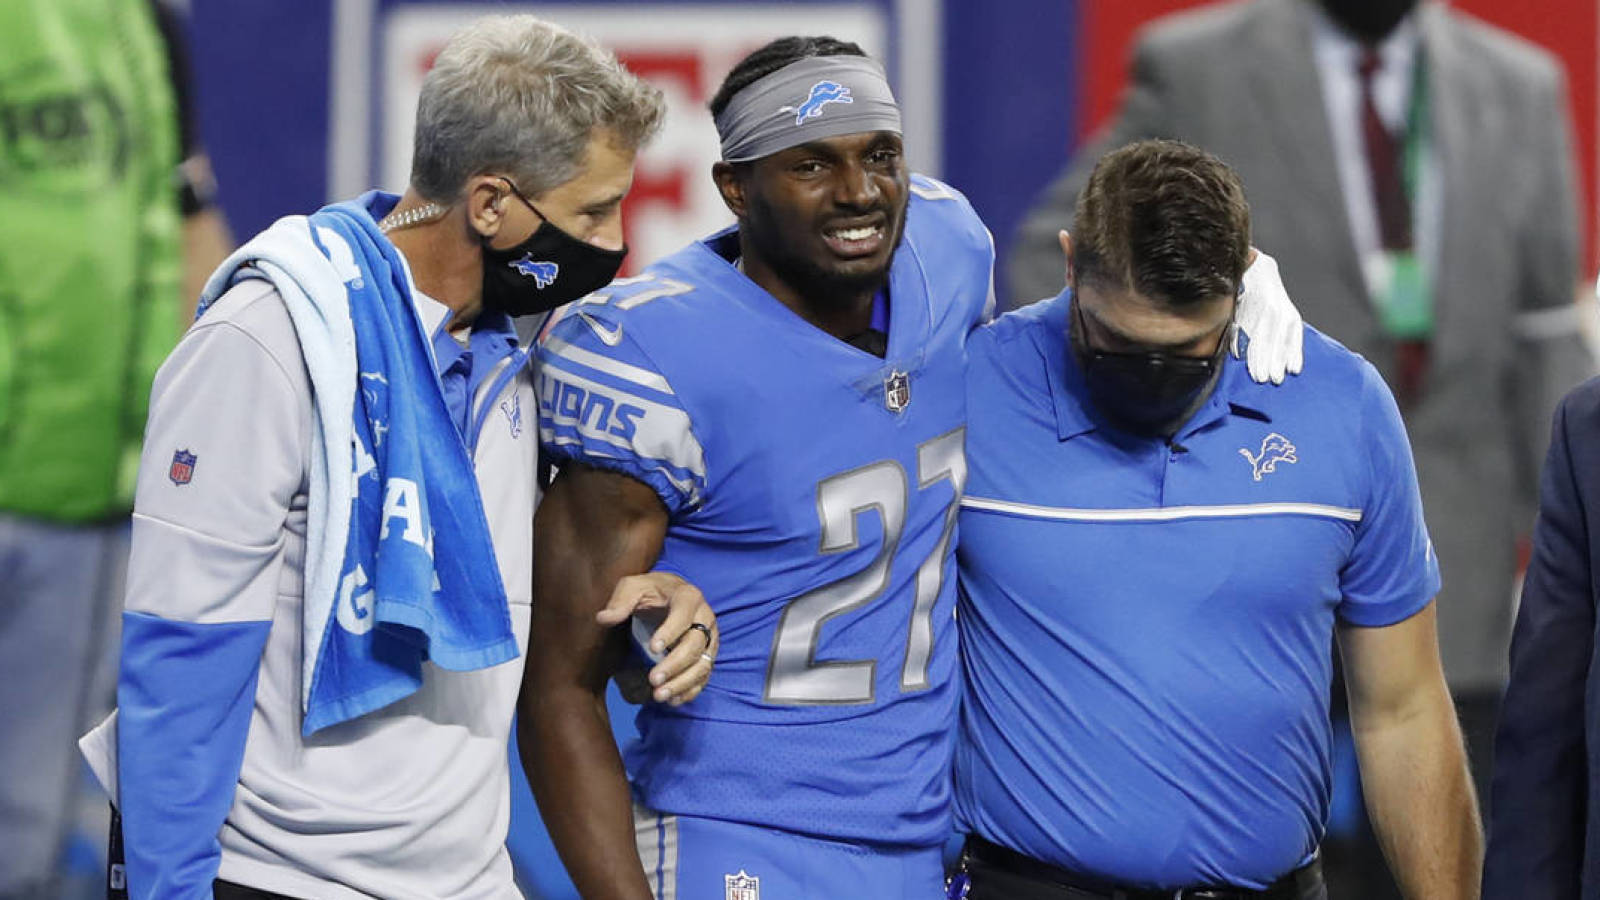 Lions activate CB Justin Coleman, waive RB Bo Scarbrough | Yardbarker